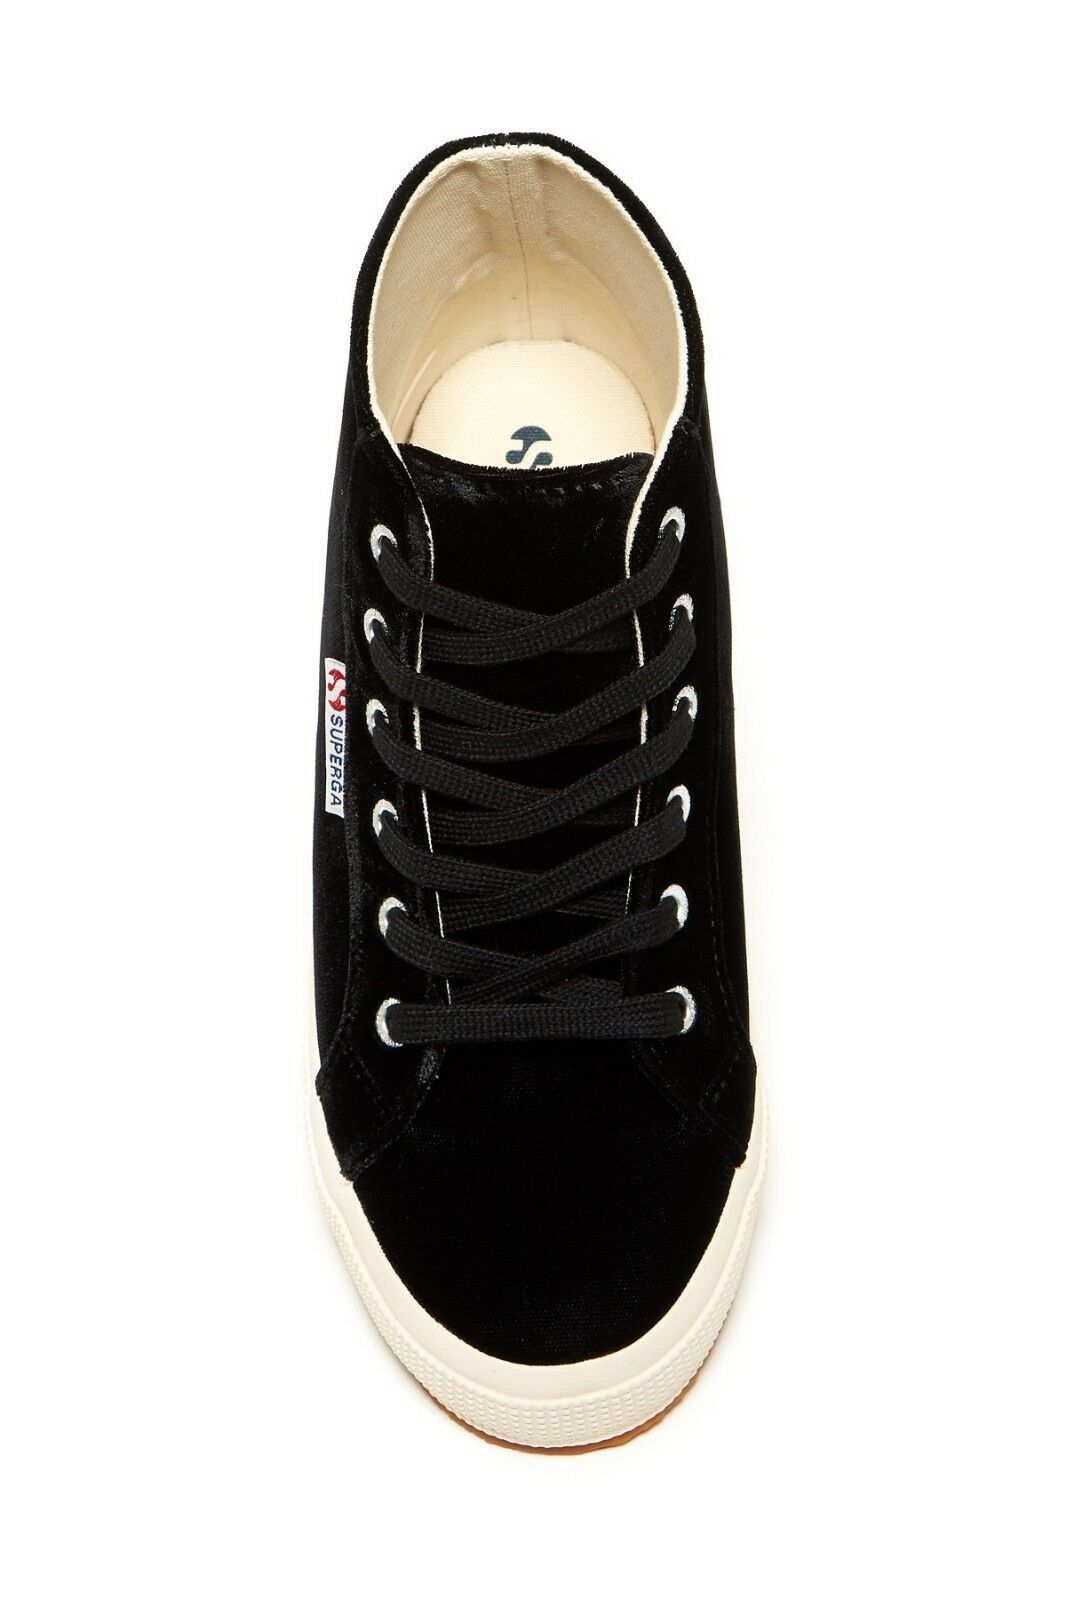 NEW SUPERGA SZ 7 HI  BLACK VELVET  HI 7 TOP SNEAKERS 221448